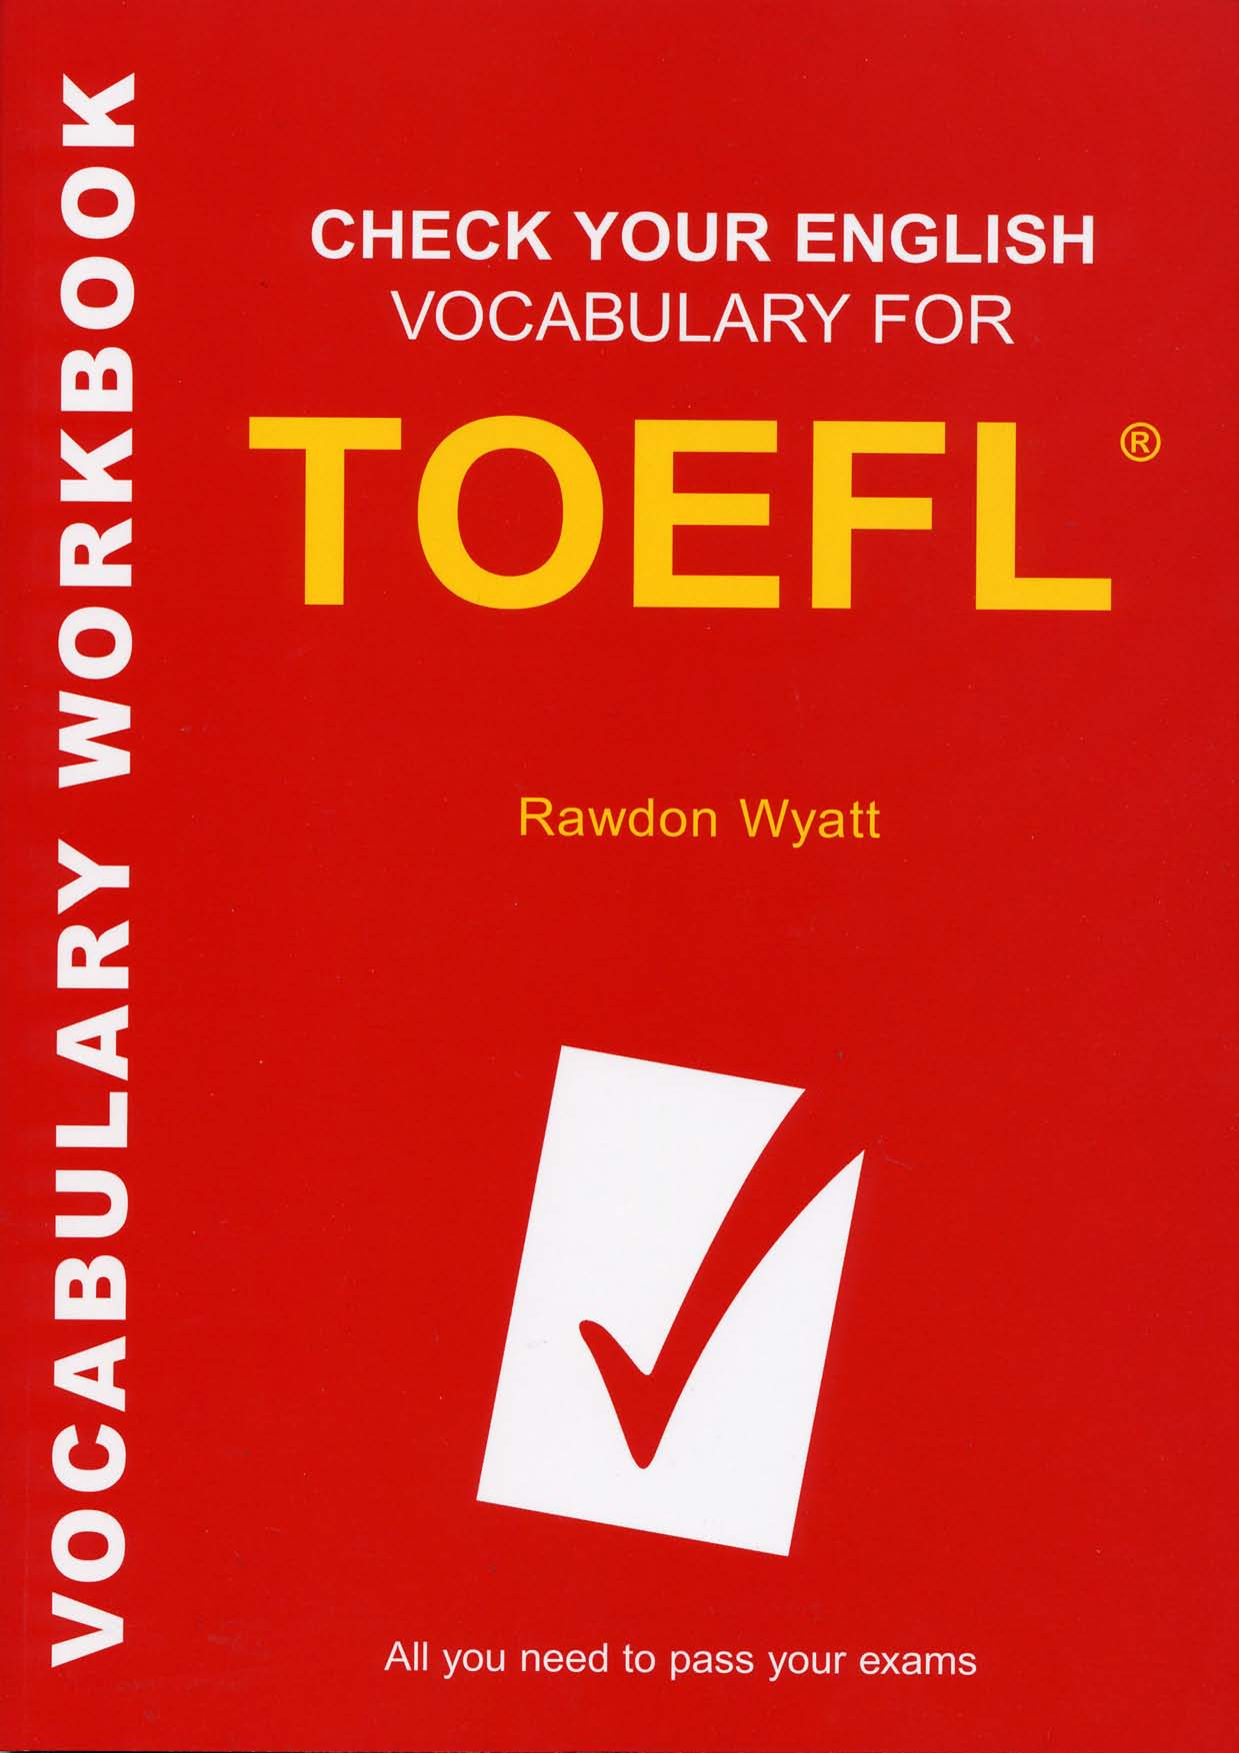 Check Your English Vocabulary for TOEFL - Révisez votre vocabulaire d'anglais pour le TOEFL